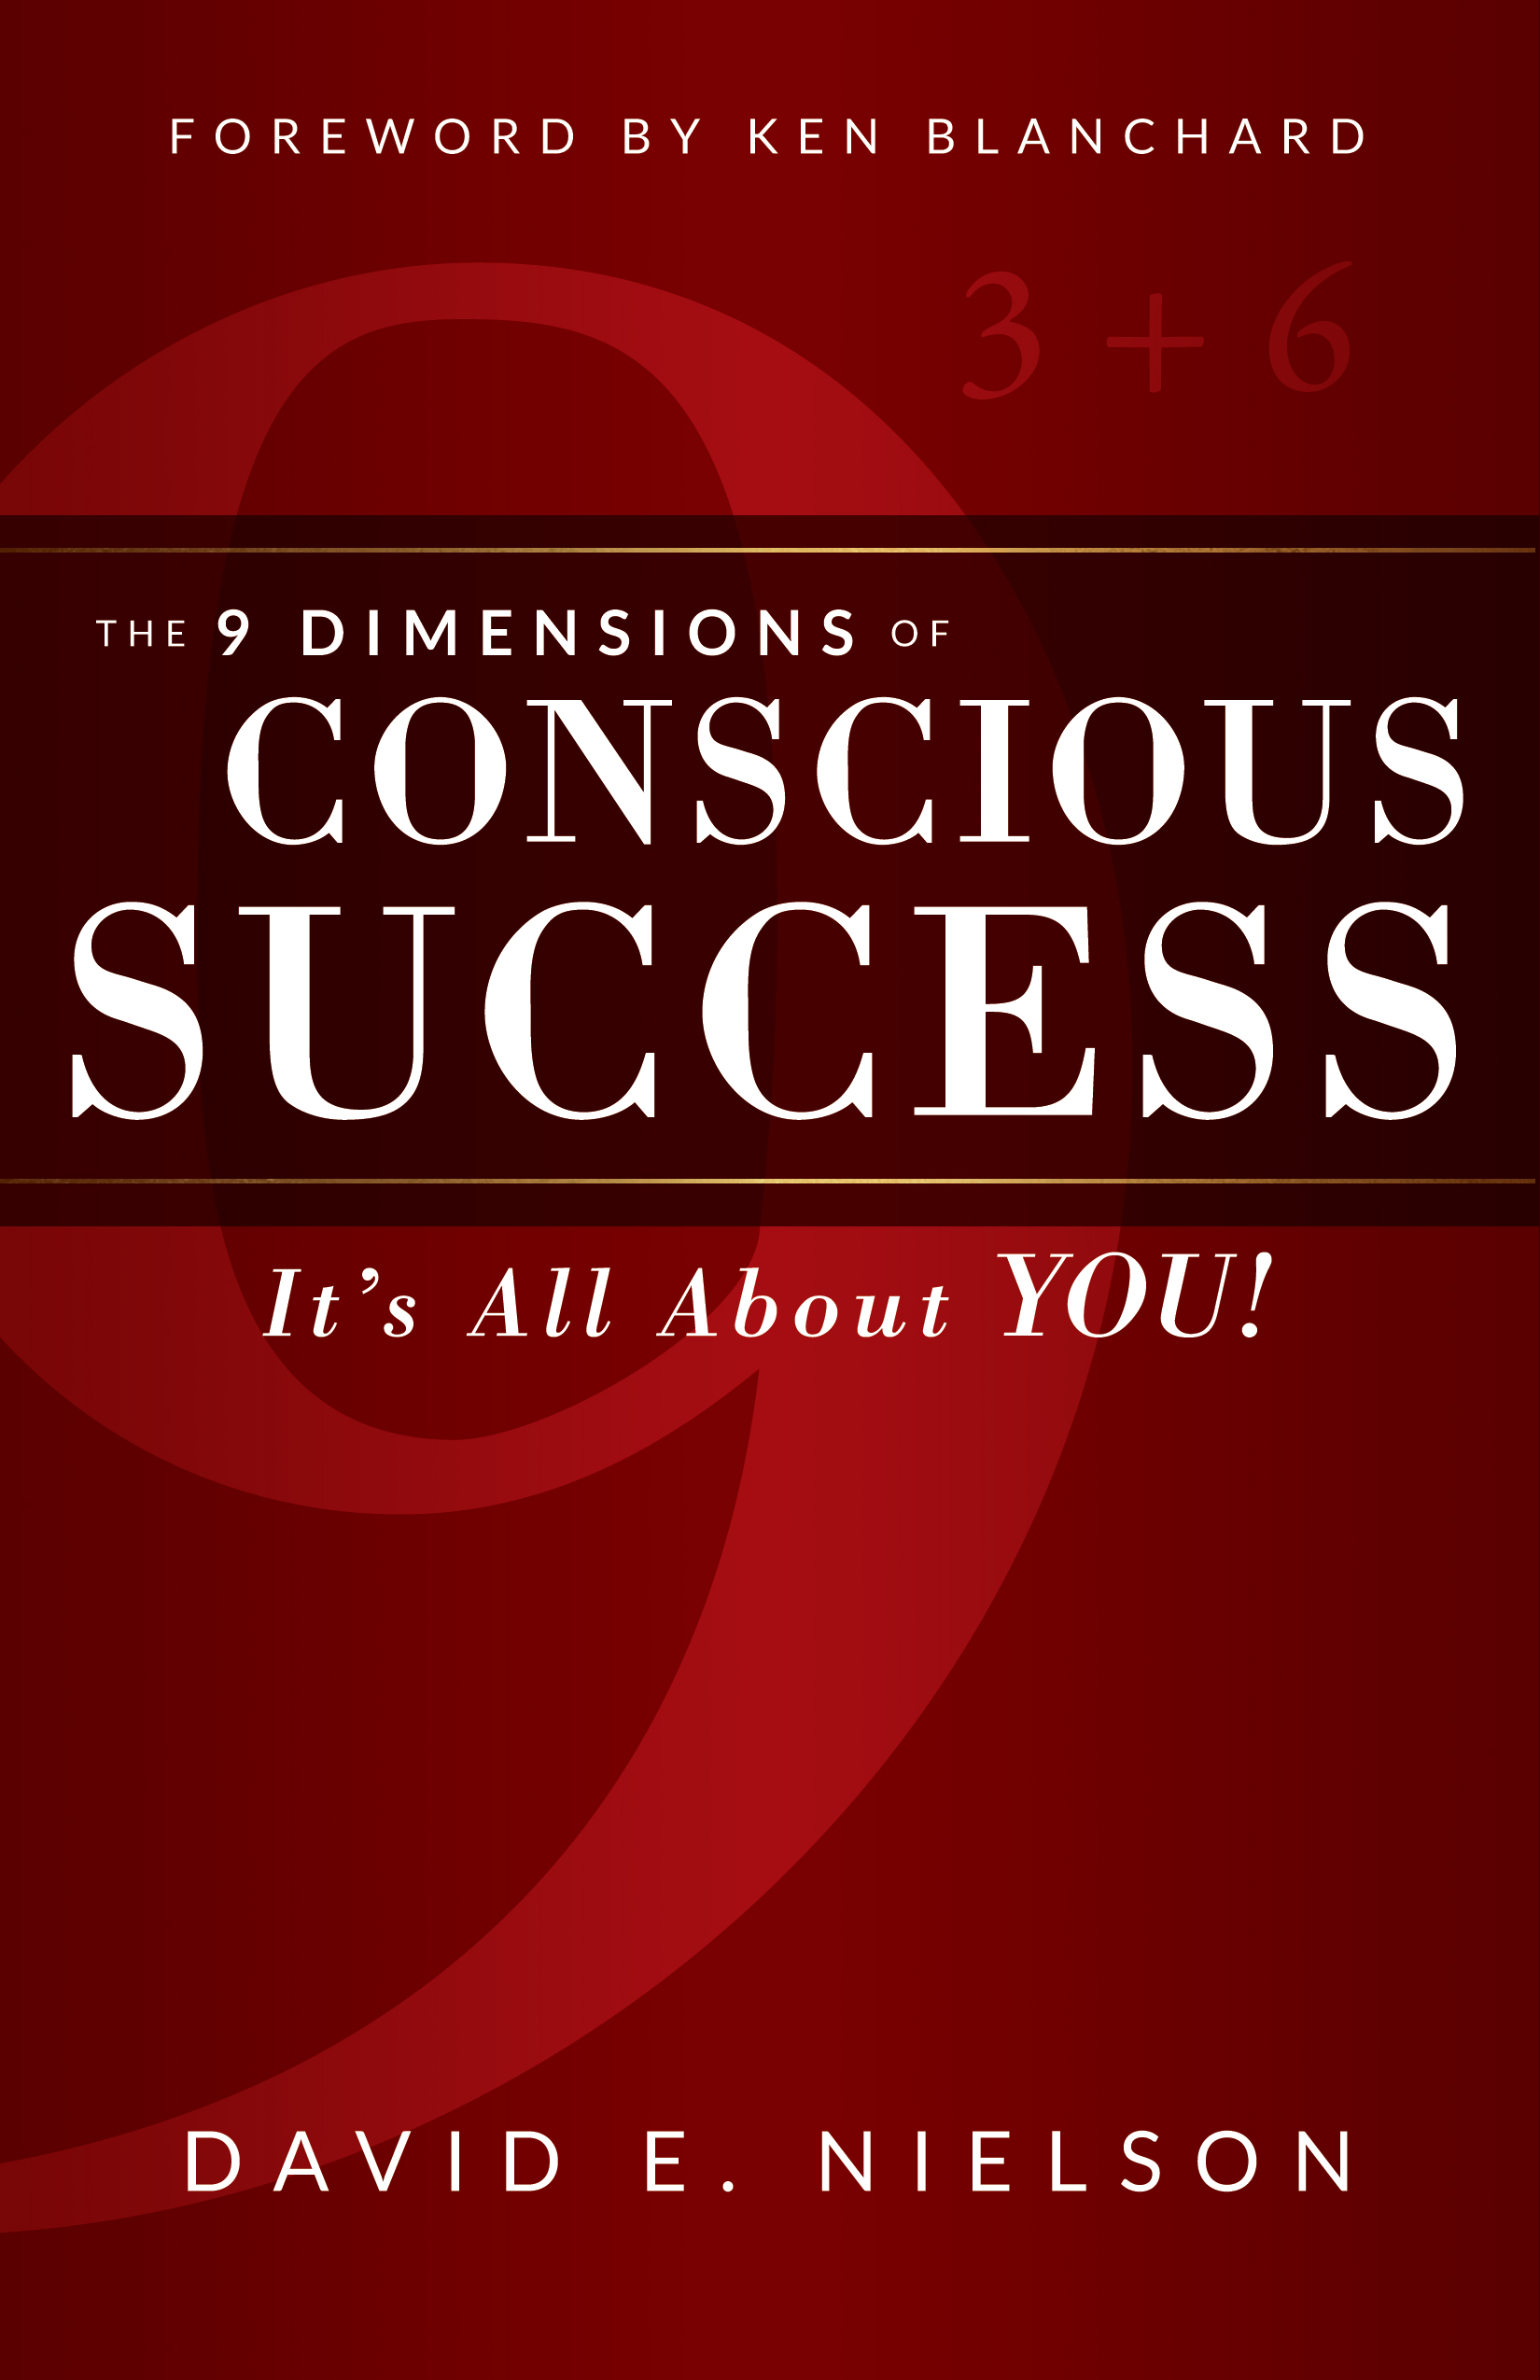 The 9 Dimensions of Conscious Success - David E. Nielson